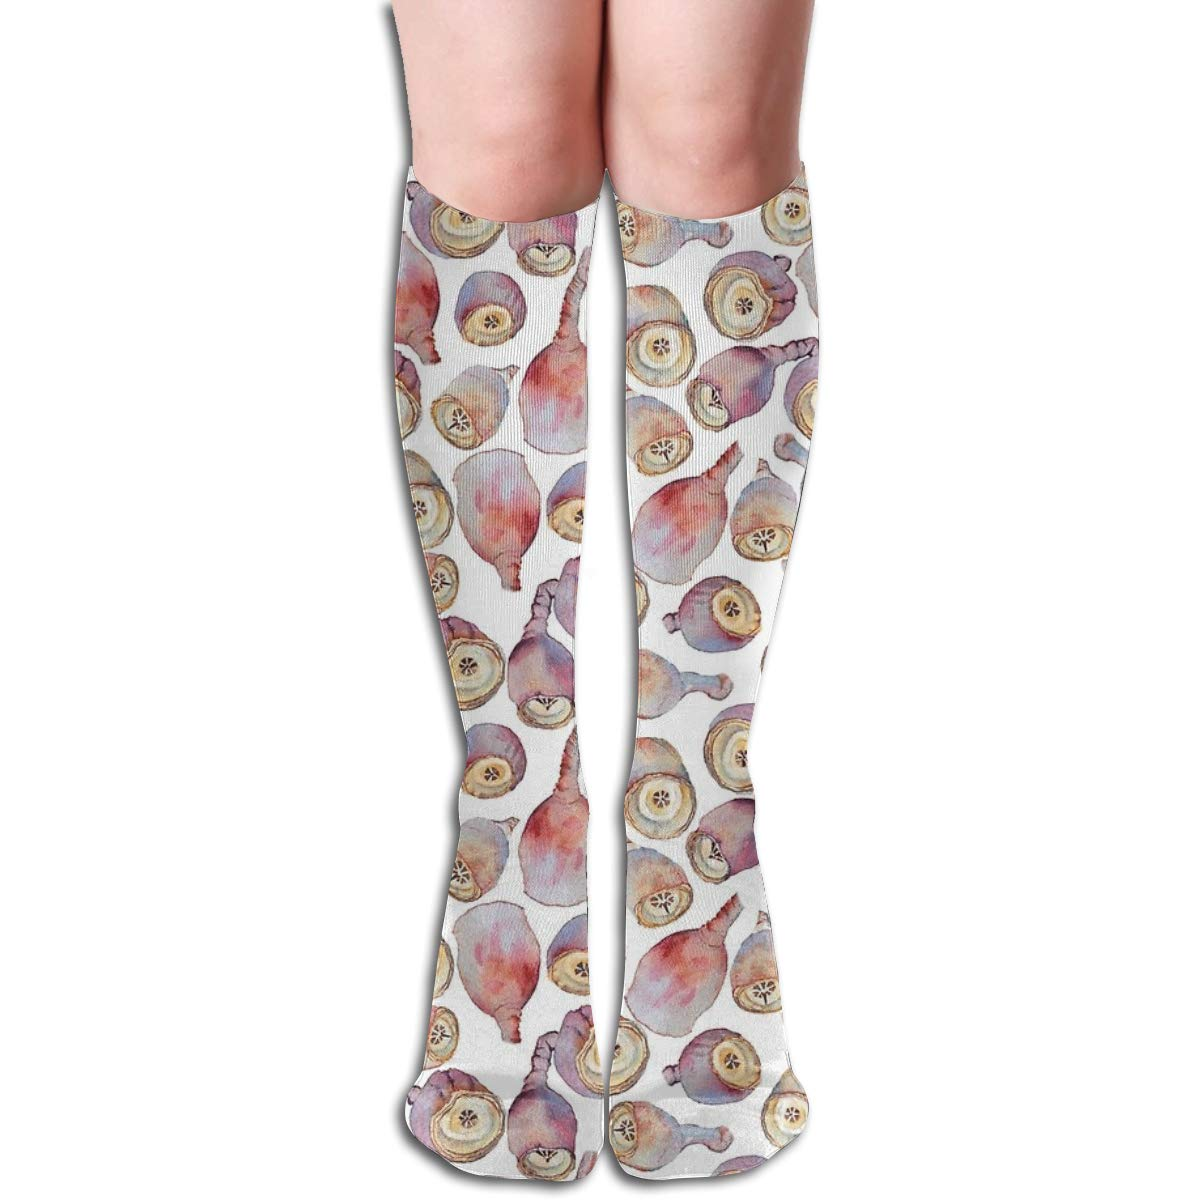 Gumnuts Watercolour white Background Unisex Compression Socks Athletic Tube Stockings Sport Long Socks One Size